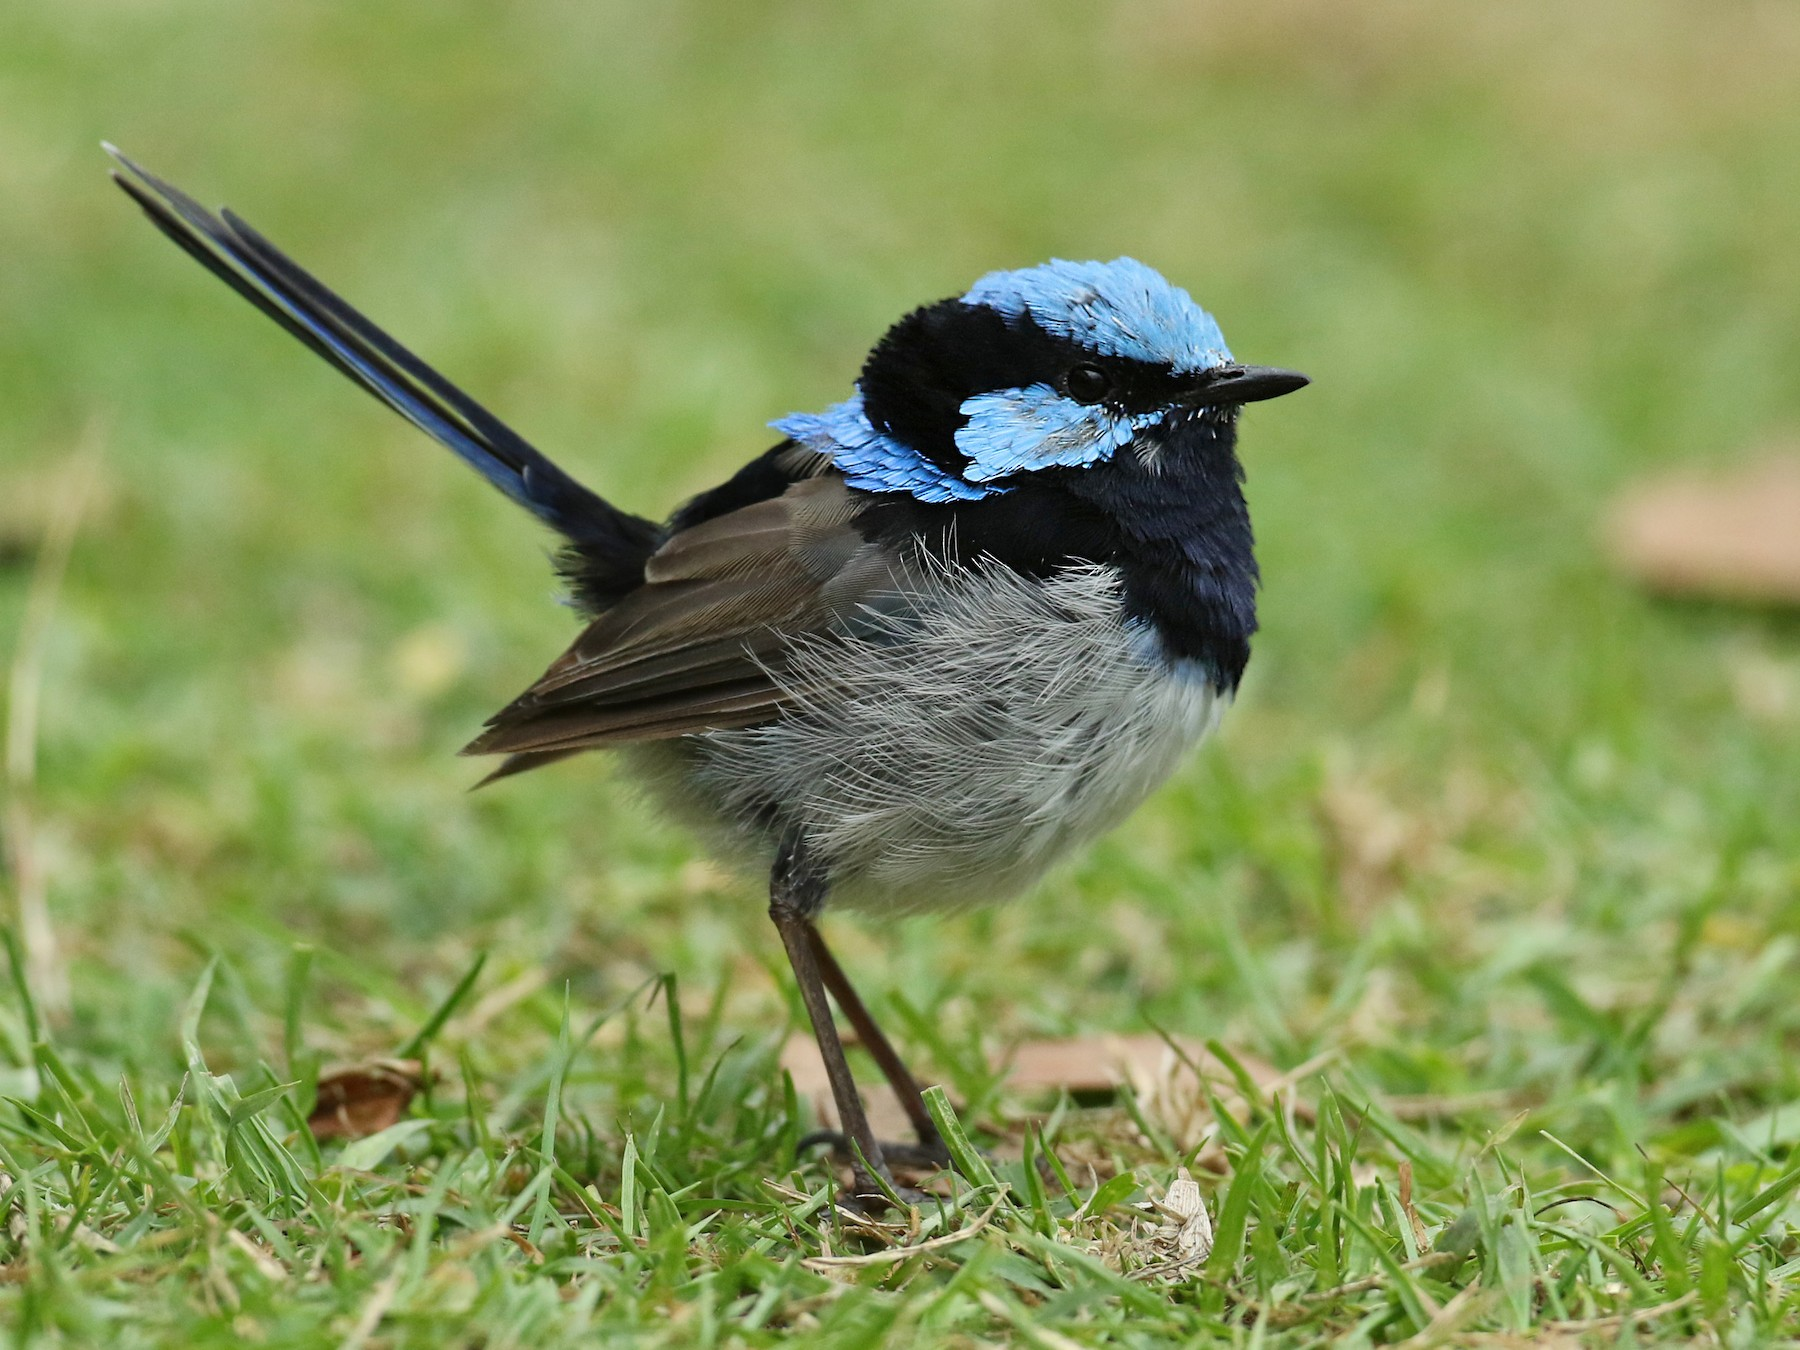 Superb Fairywren - Luke Seitz